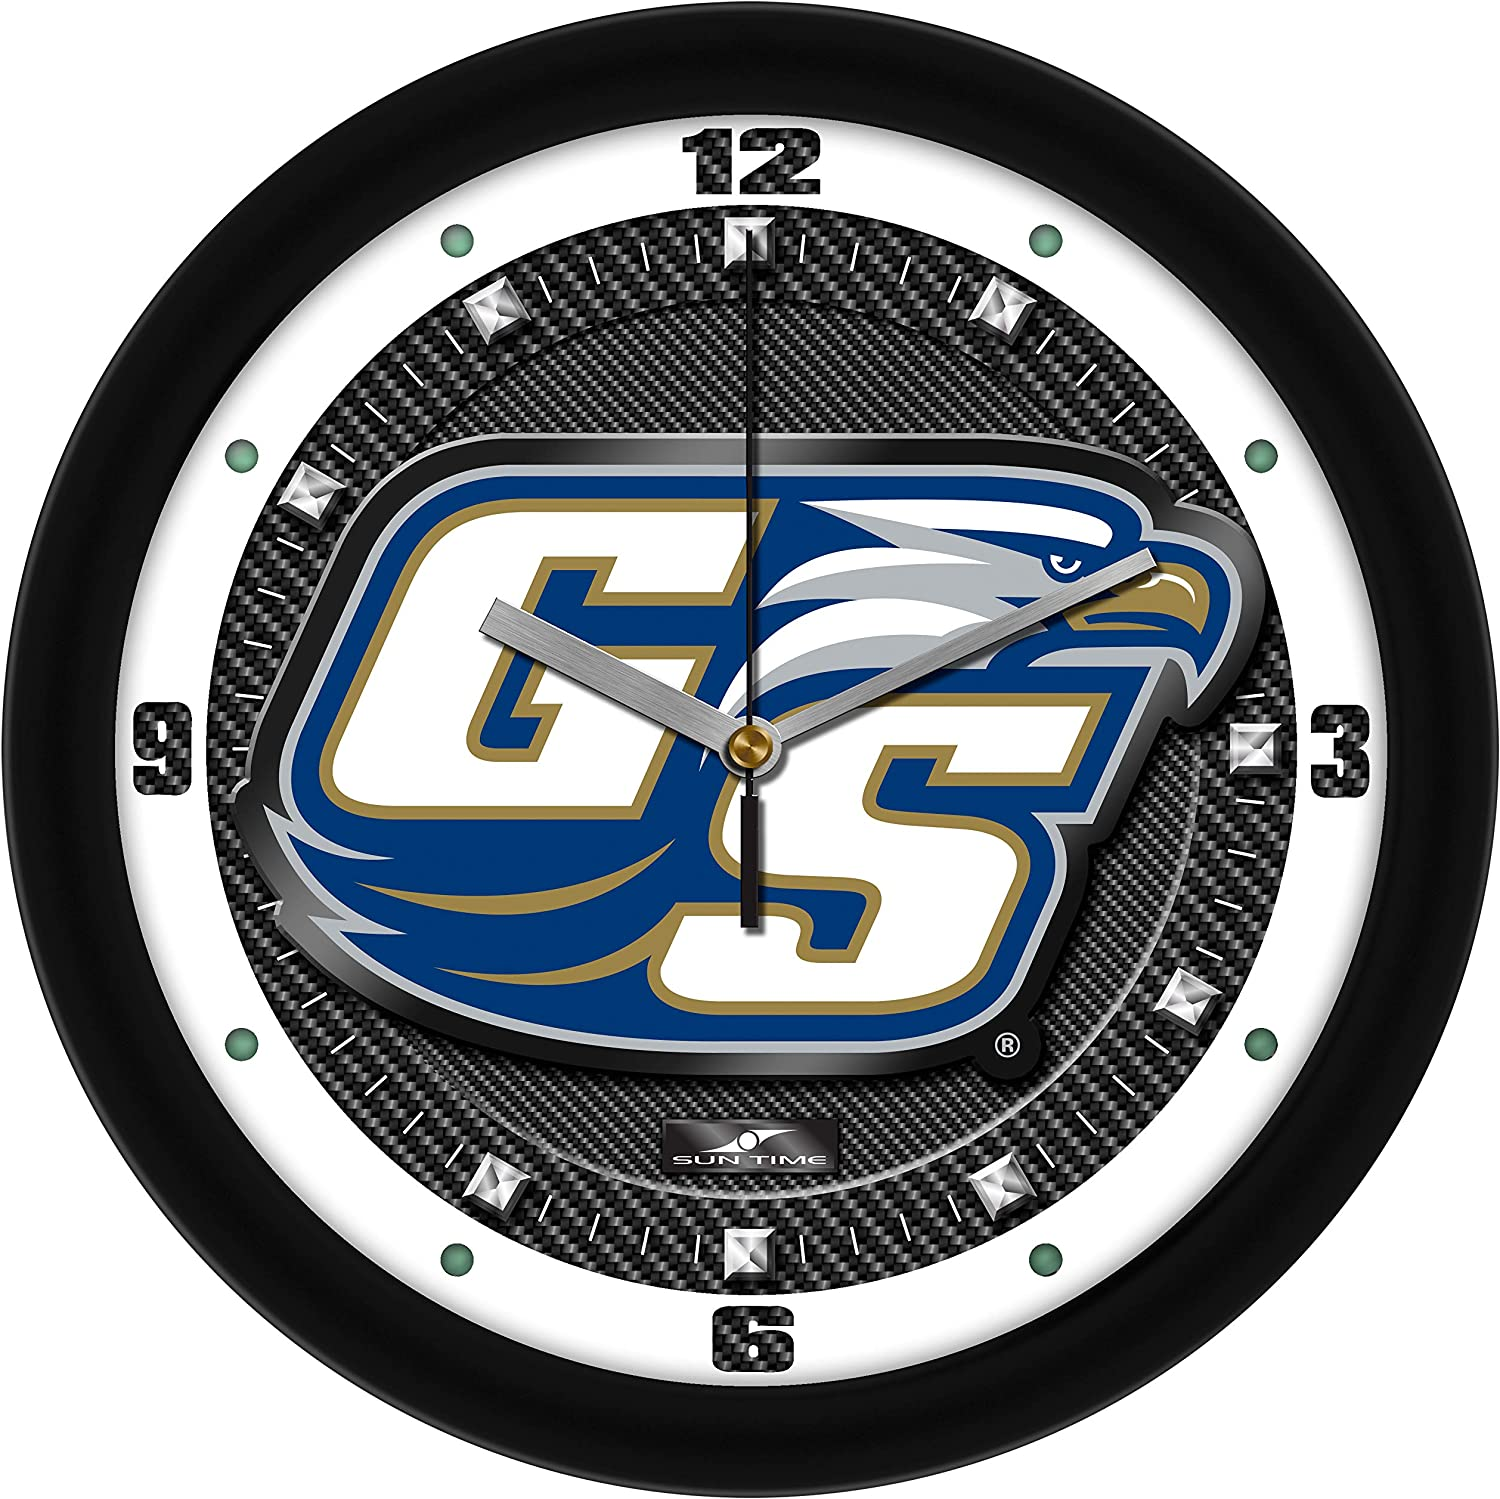 Georgia Southern Eagles - Carbon Wall Fiber Clock OFFicial mail Large discharge sale order Textured